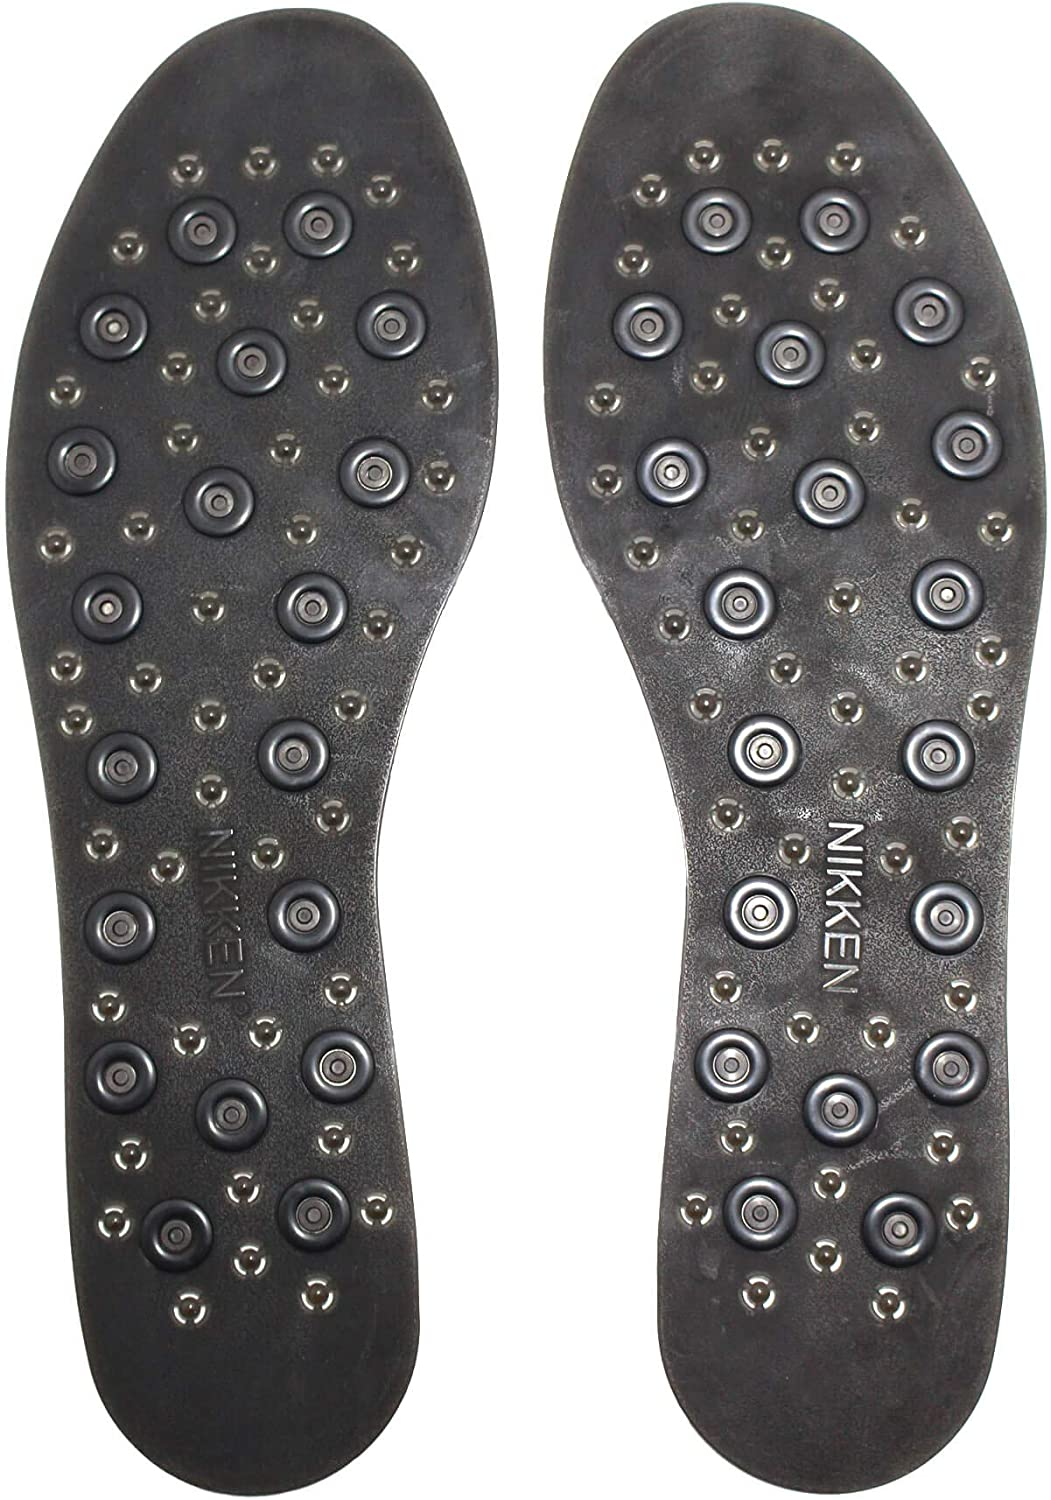 Nikken 1 mSteps Insoles with Acupressure Massage Nodes, 20214, Men Shoe Sizes 7 to 12, Pair, Cut to Fit, Magnetic Therapy, Improve Blood Circulation, Kenko